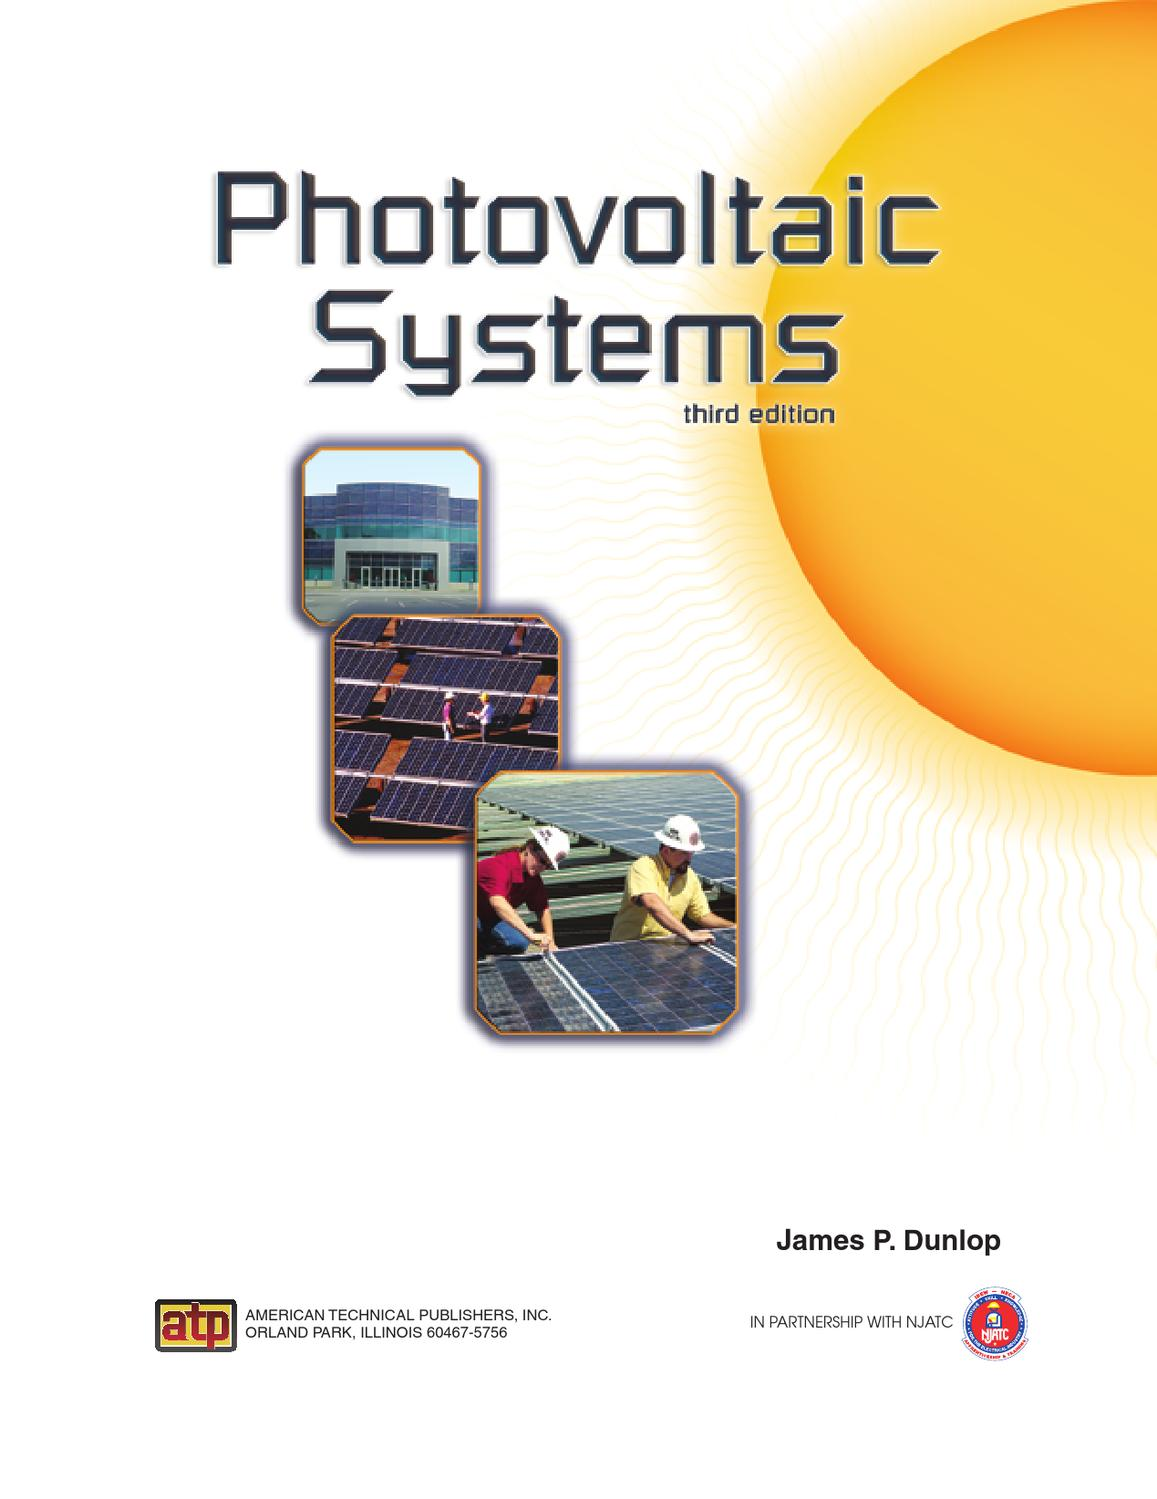 Photovoltaic Systems: James P. Dunlop, In partnership with NJATC Photovoltaic systems by jim dunlap